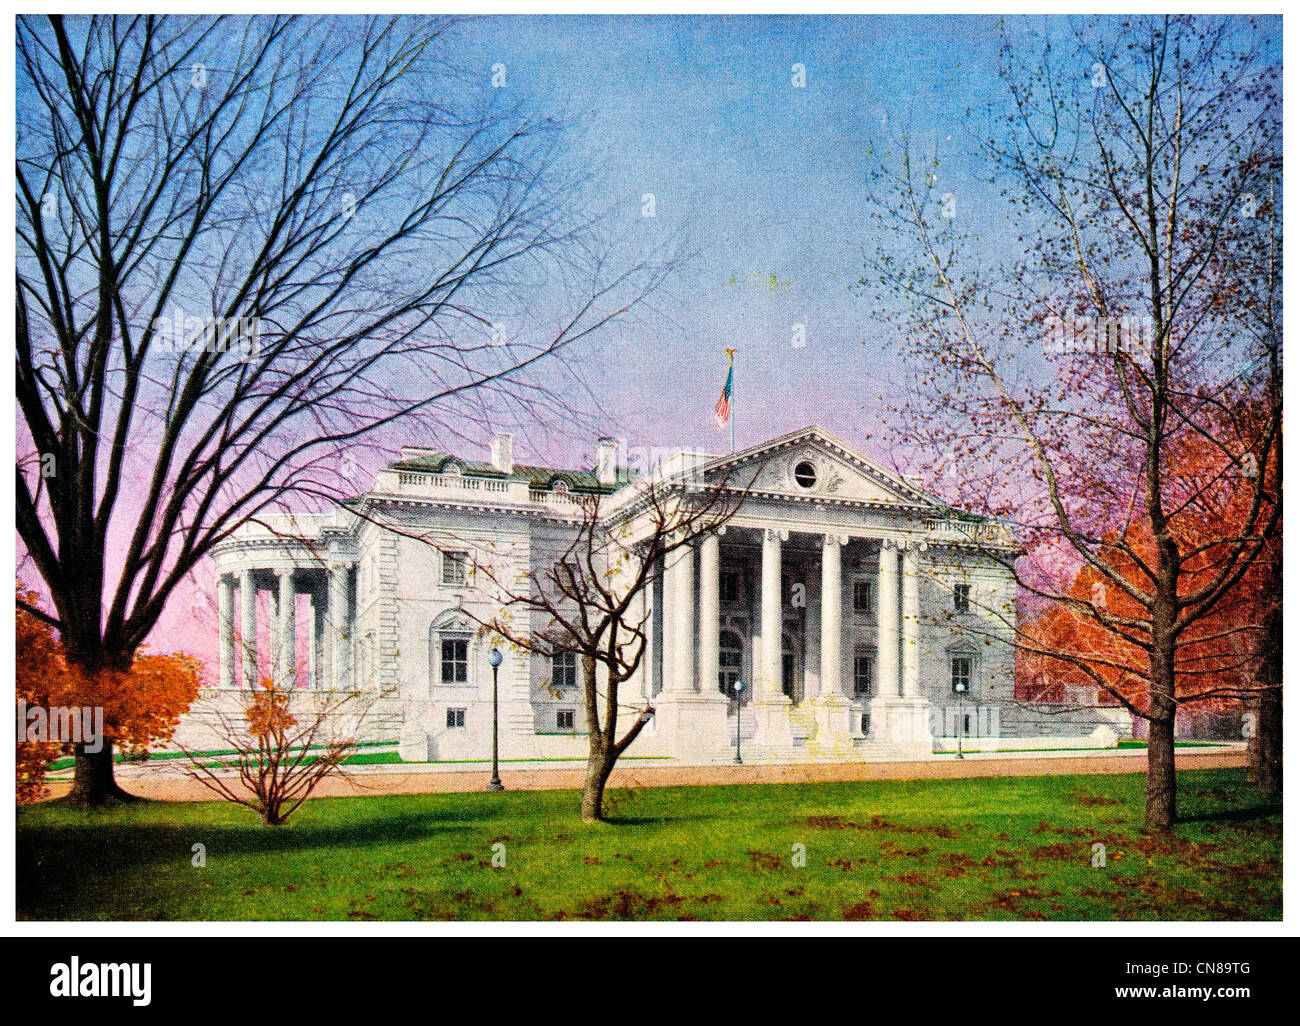 First published 1915 Continental Hall USA - Stock Image